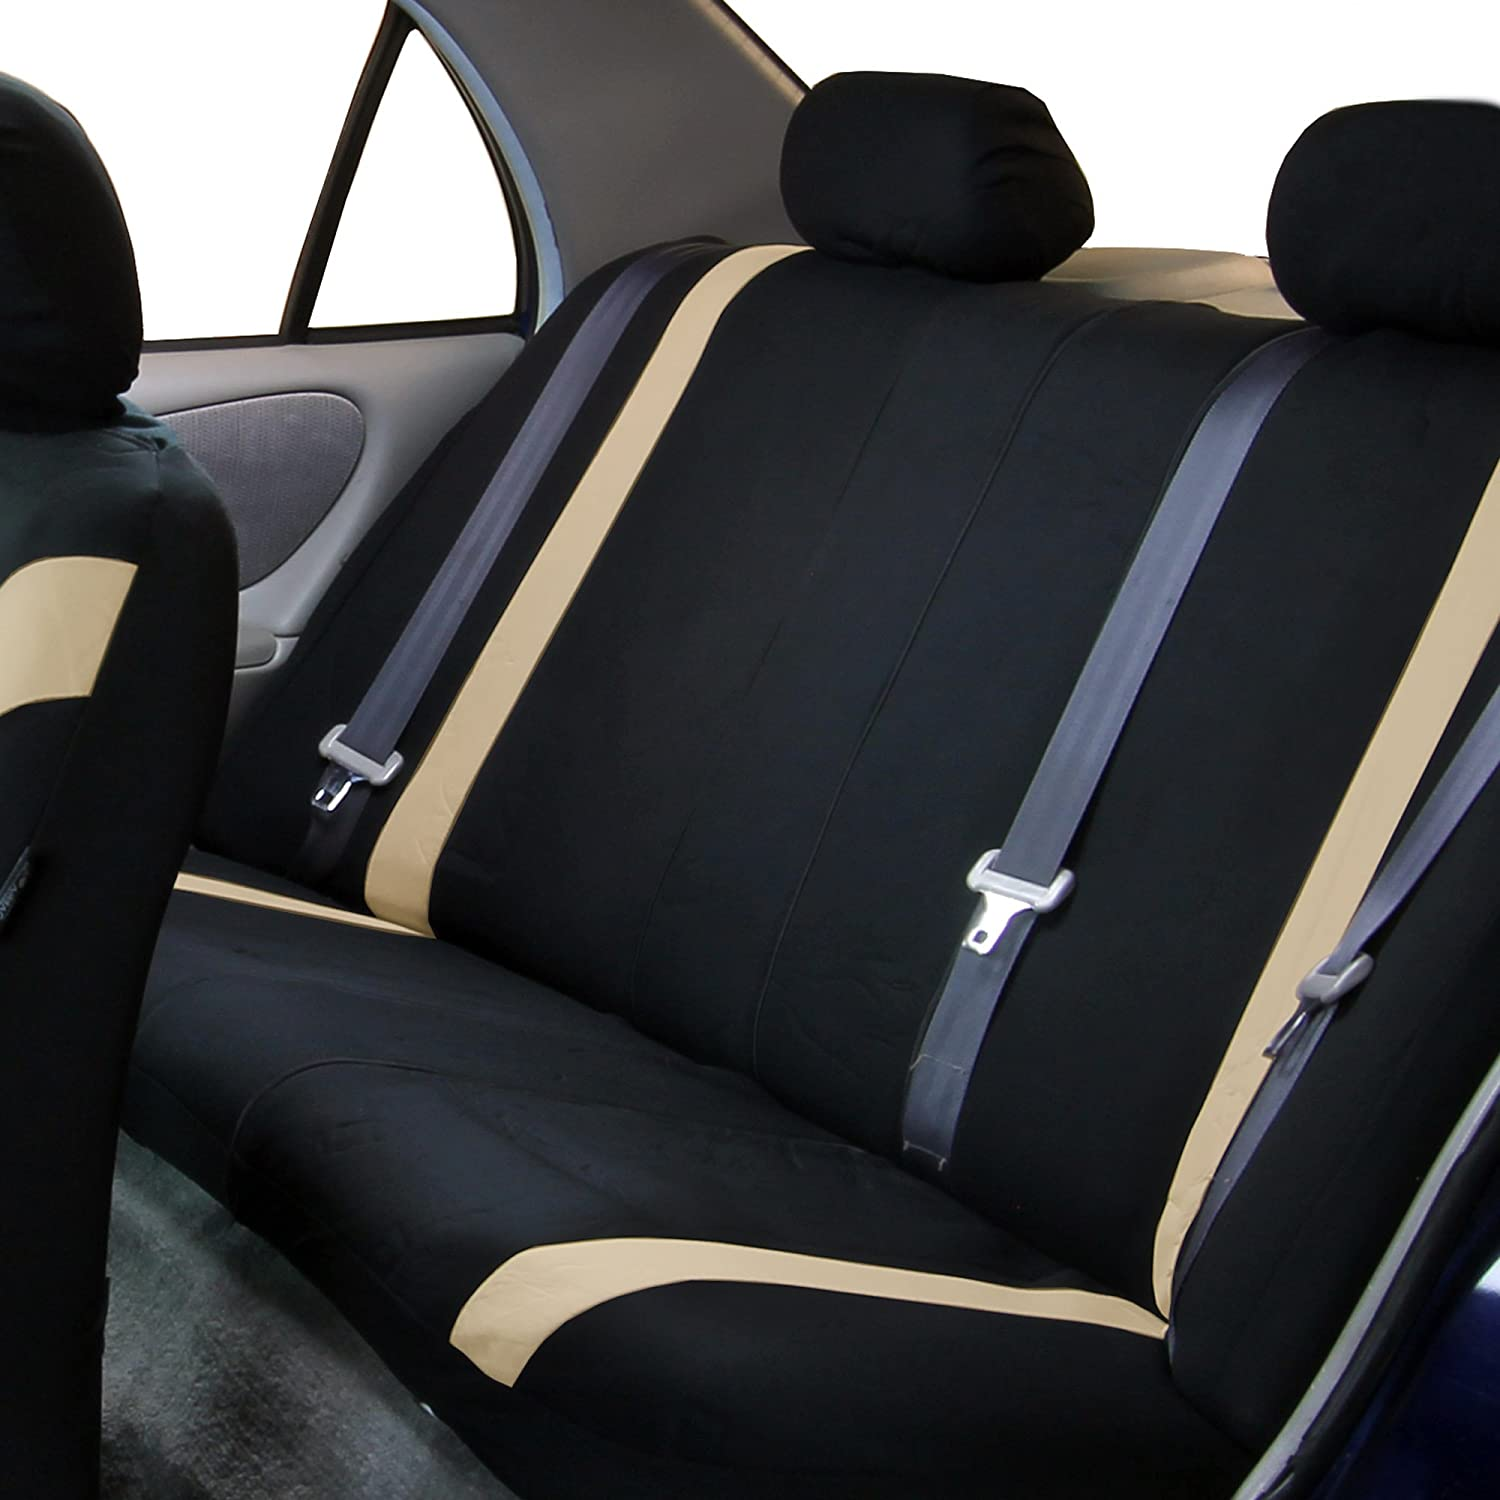 Airbag Compatible and Split Bench Truck FH Group FH-FB054115 Gray Cosmopolitan Flat Cloth Seat Covers or Van Gray//Black Color-Fit Most Car SUV